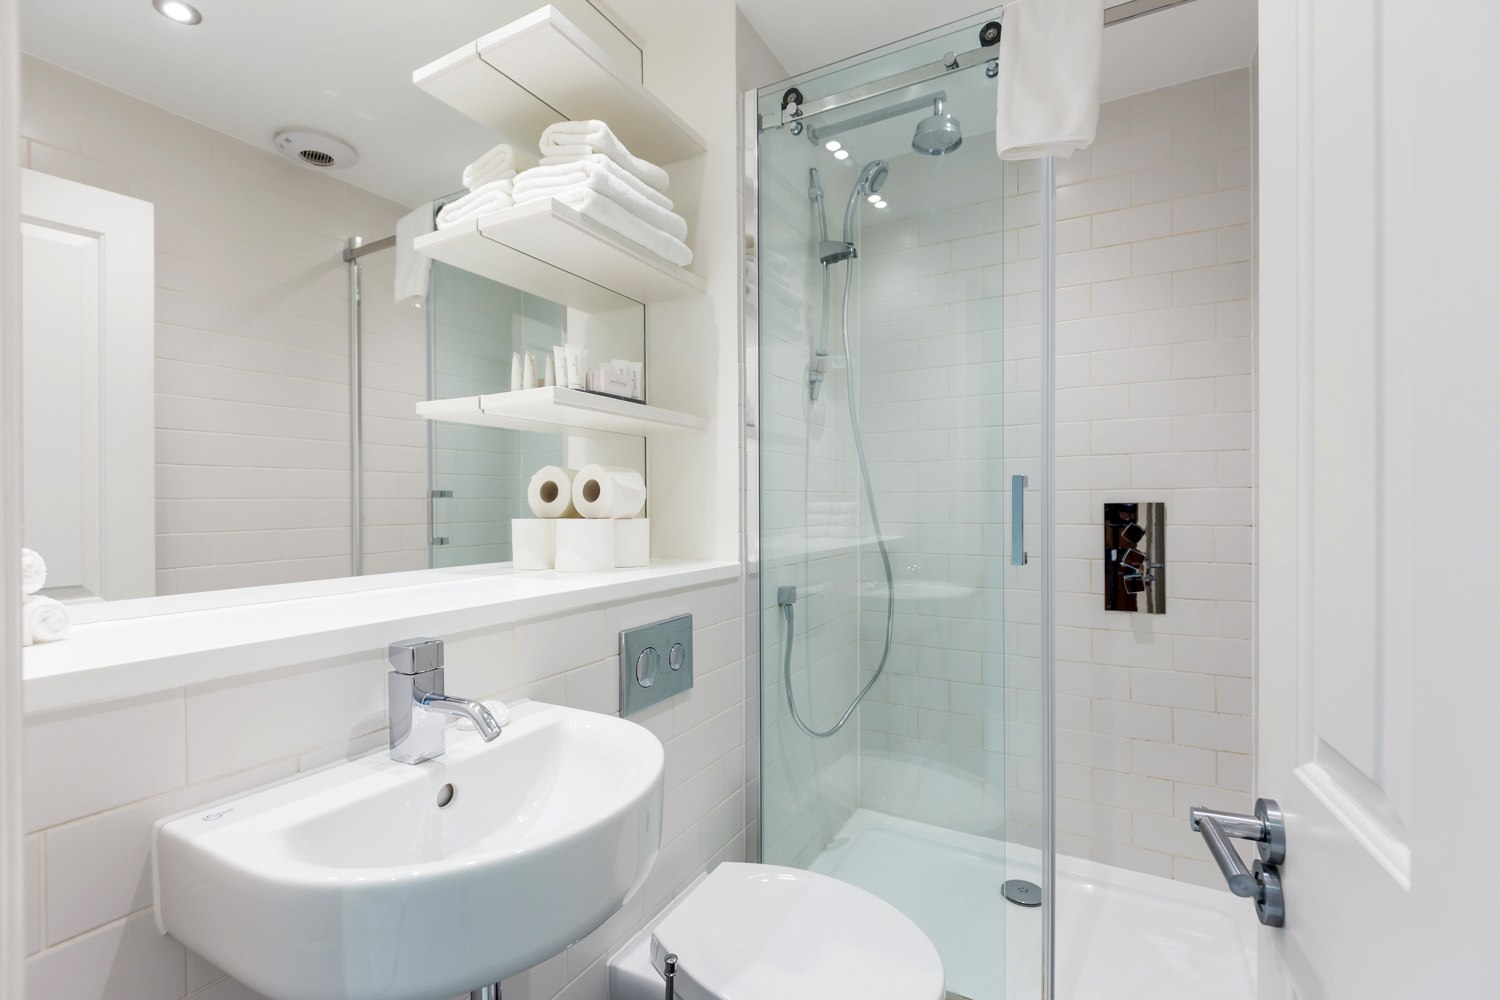 Bathroom at Covent Garden Serviced Apartments - Citybase Apartments